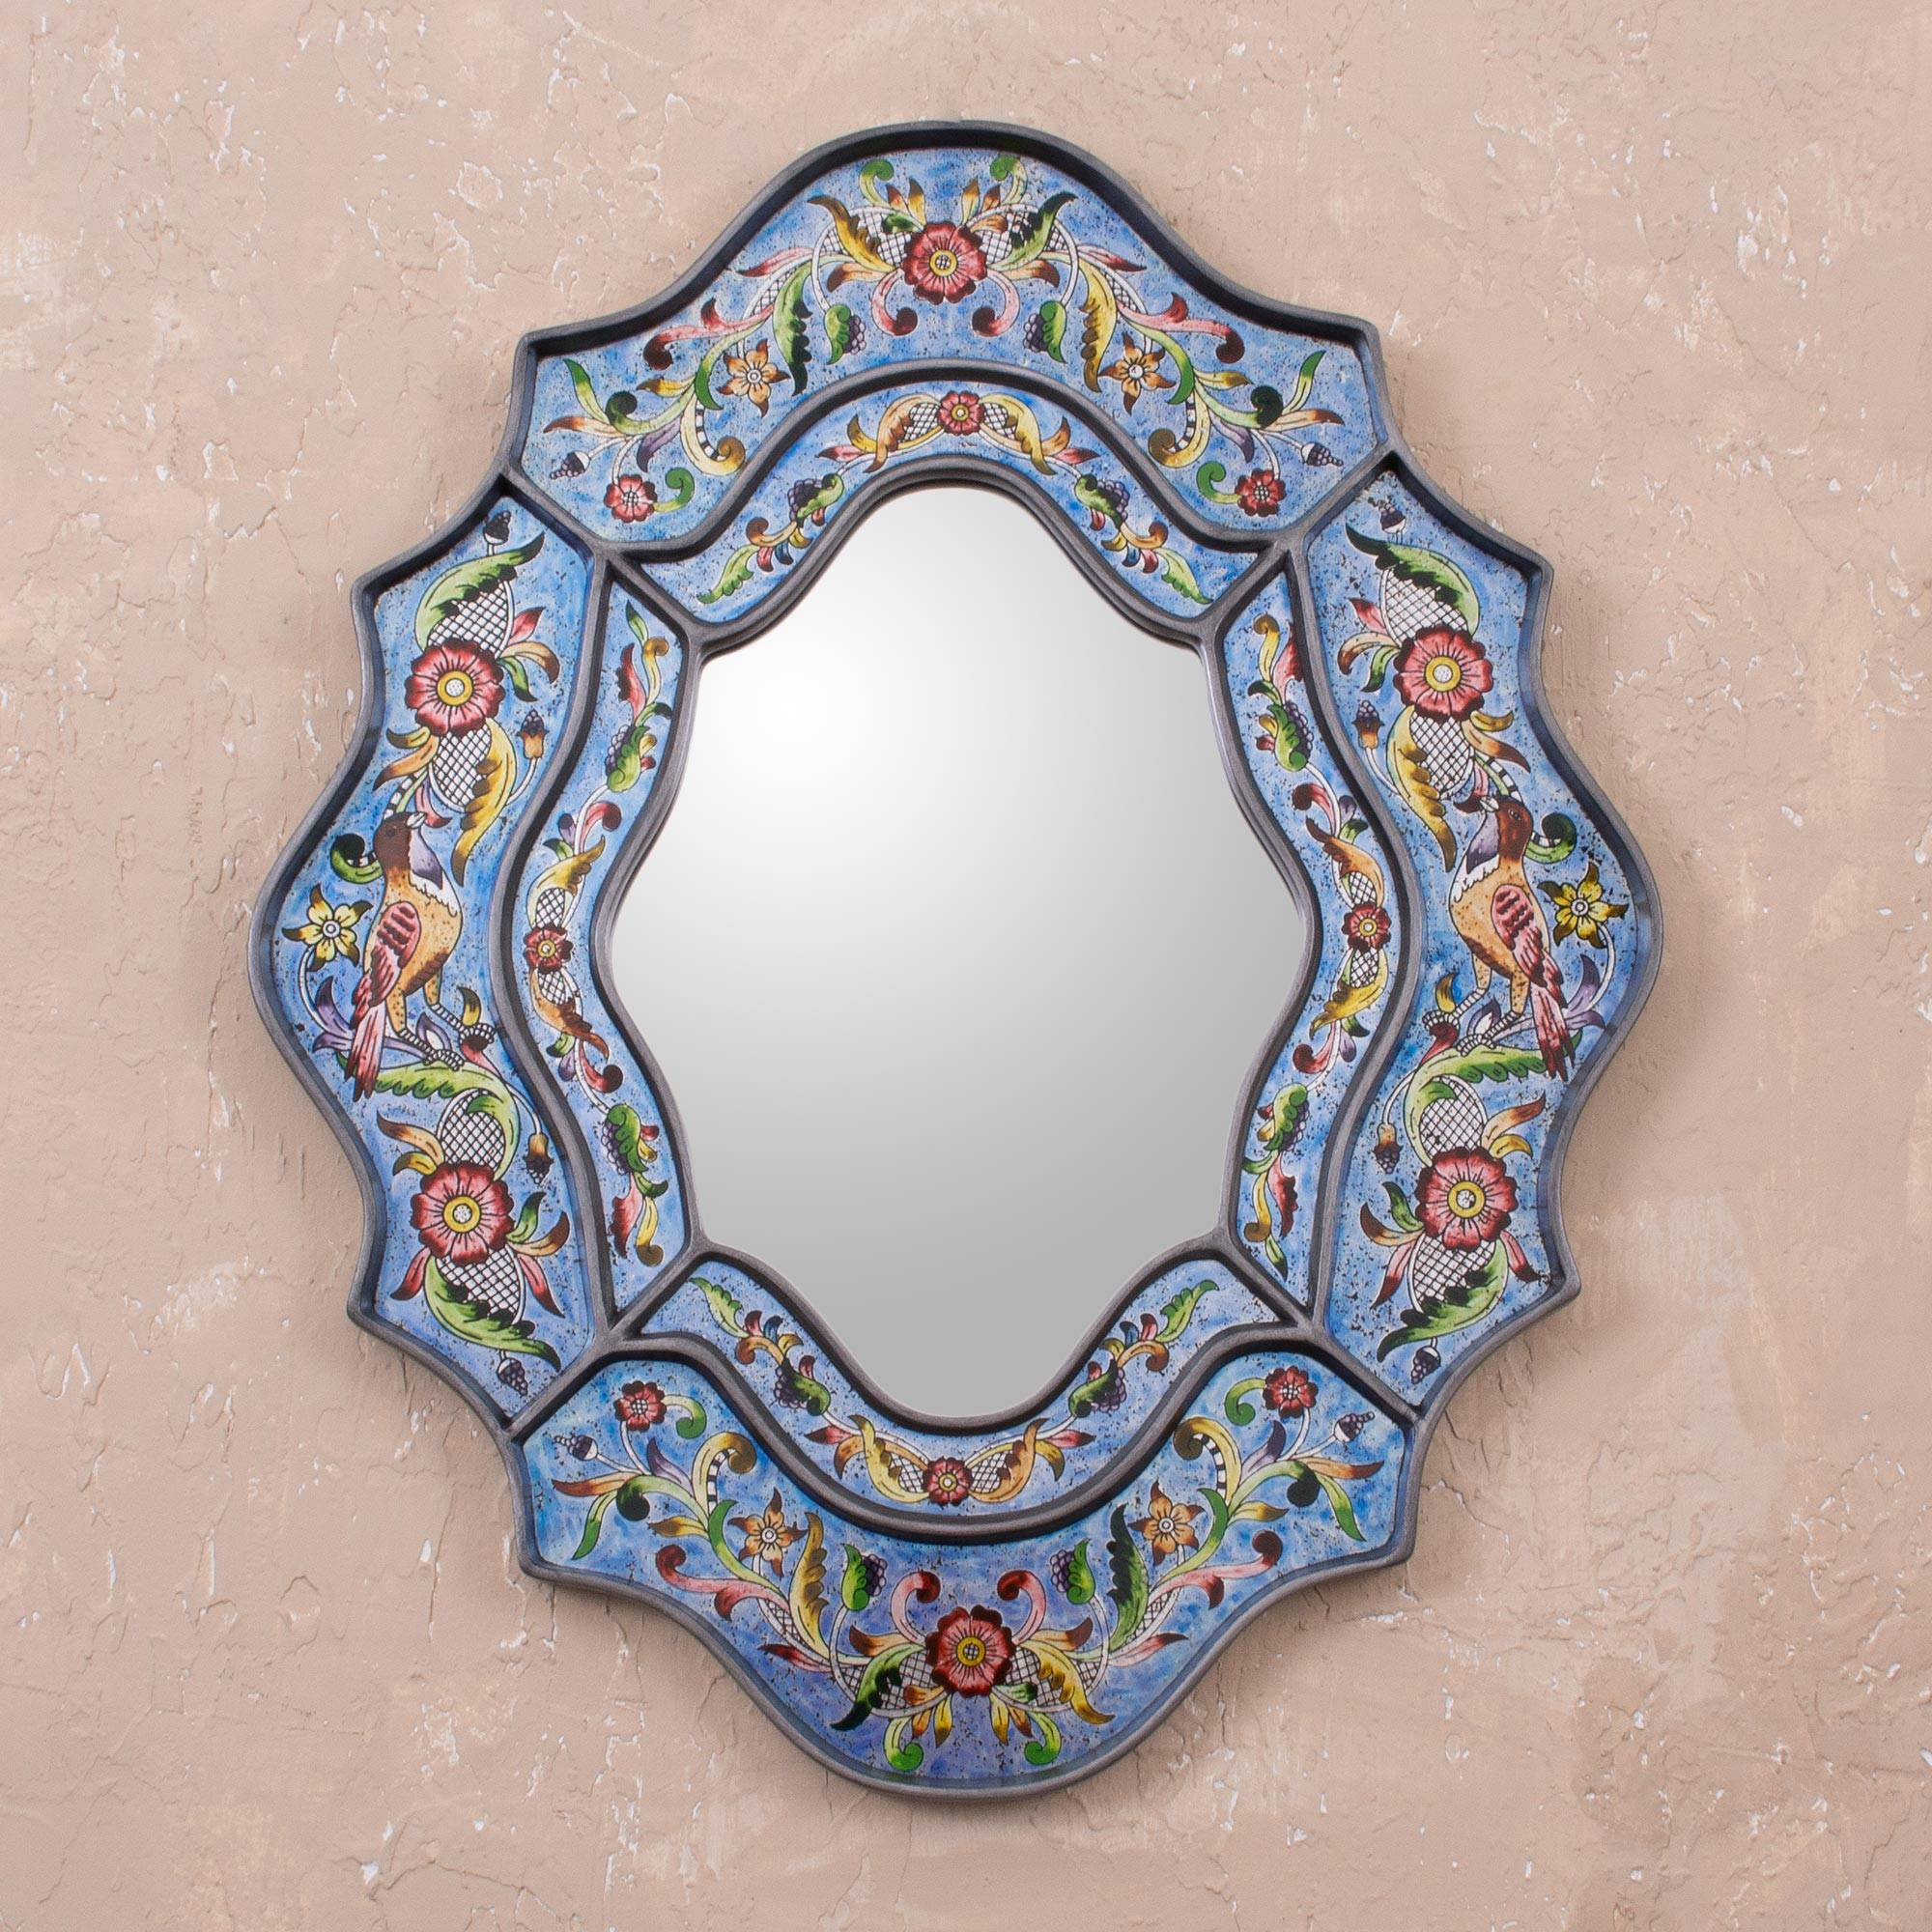 Blue Sky Reverse Hand Painted Mirror from Peru Wall Art In Your Home